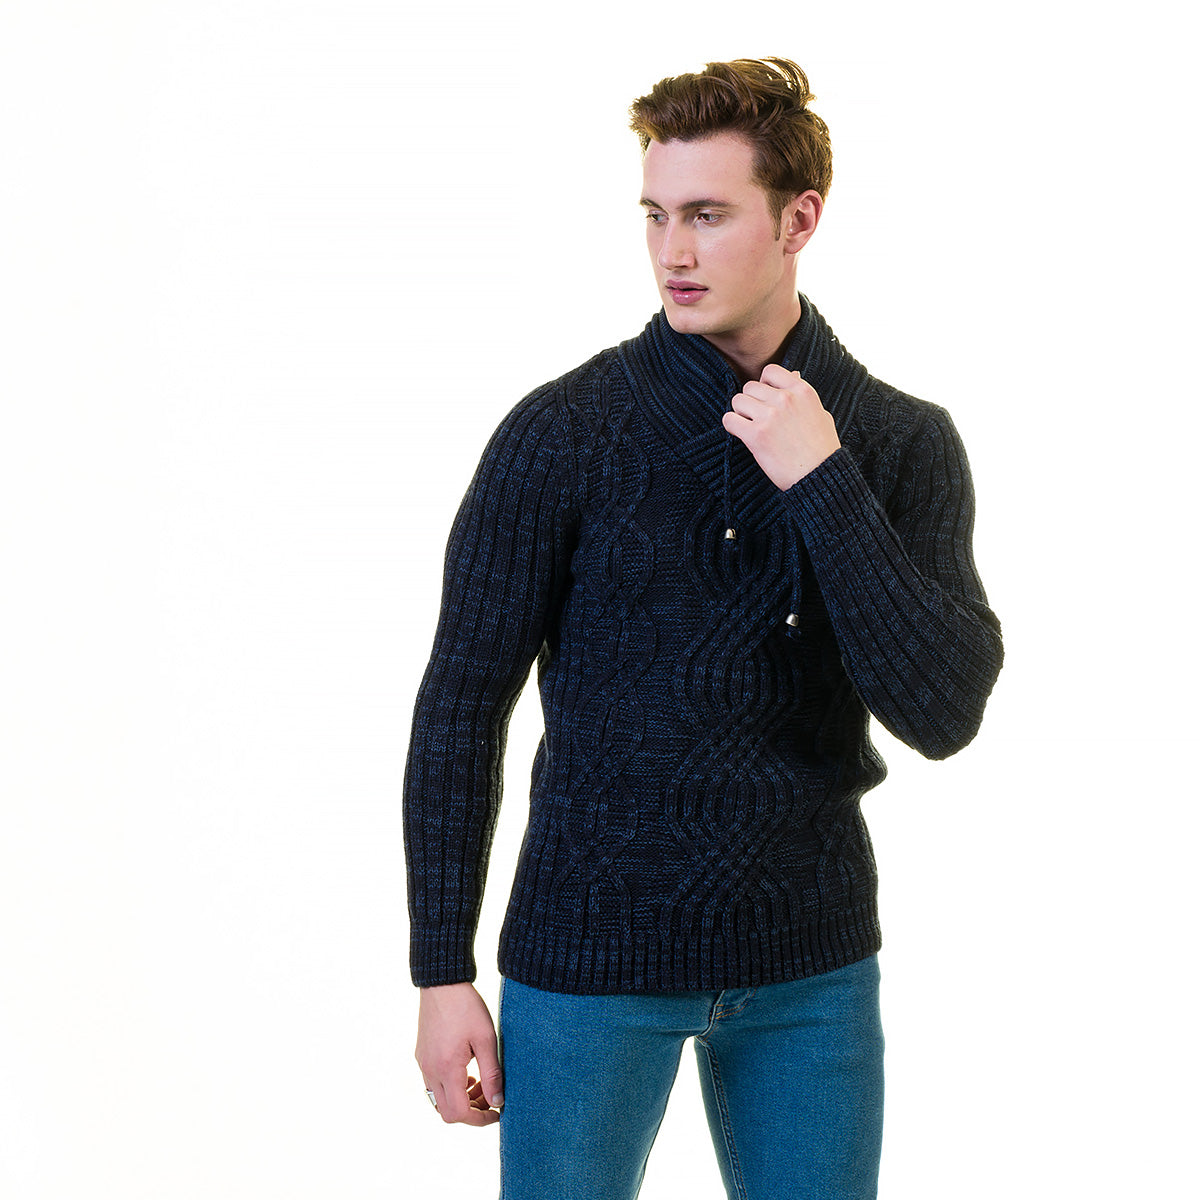 European Wool Luxury Zippered With Sweater Jacket Warm Winter Tailor Fit